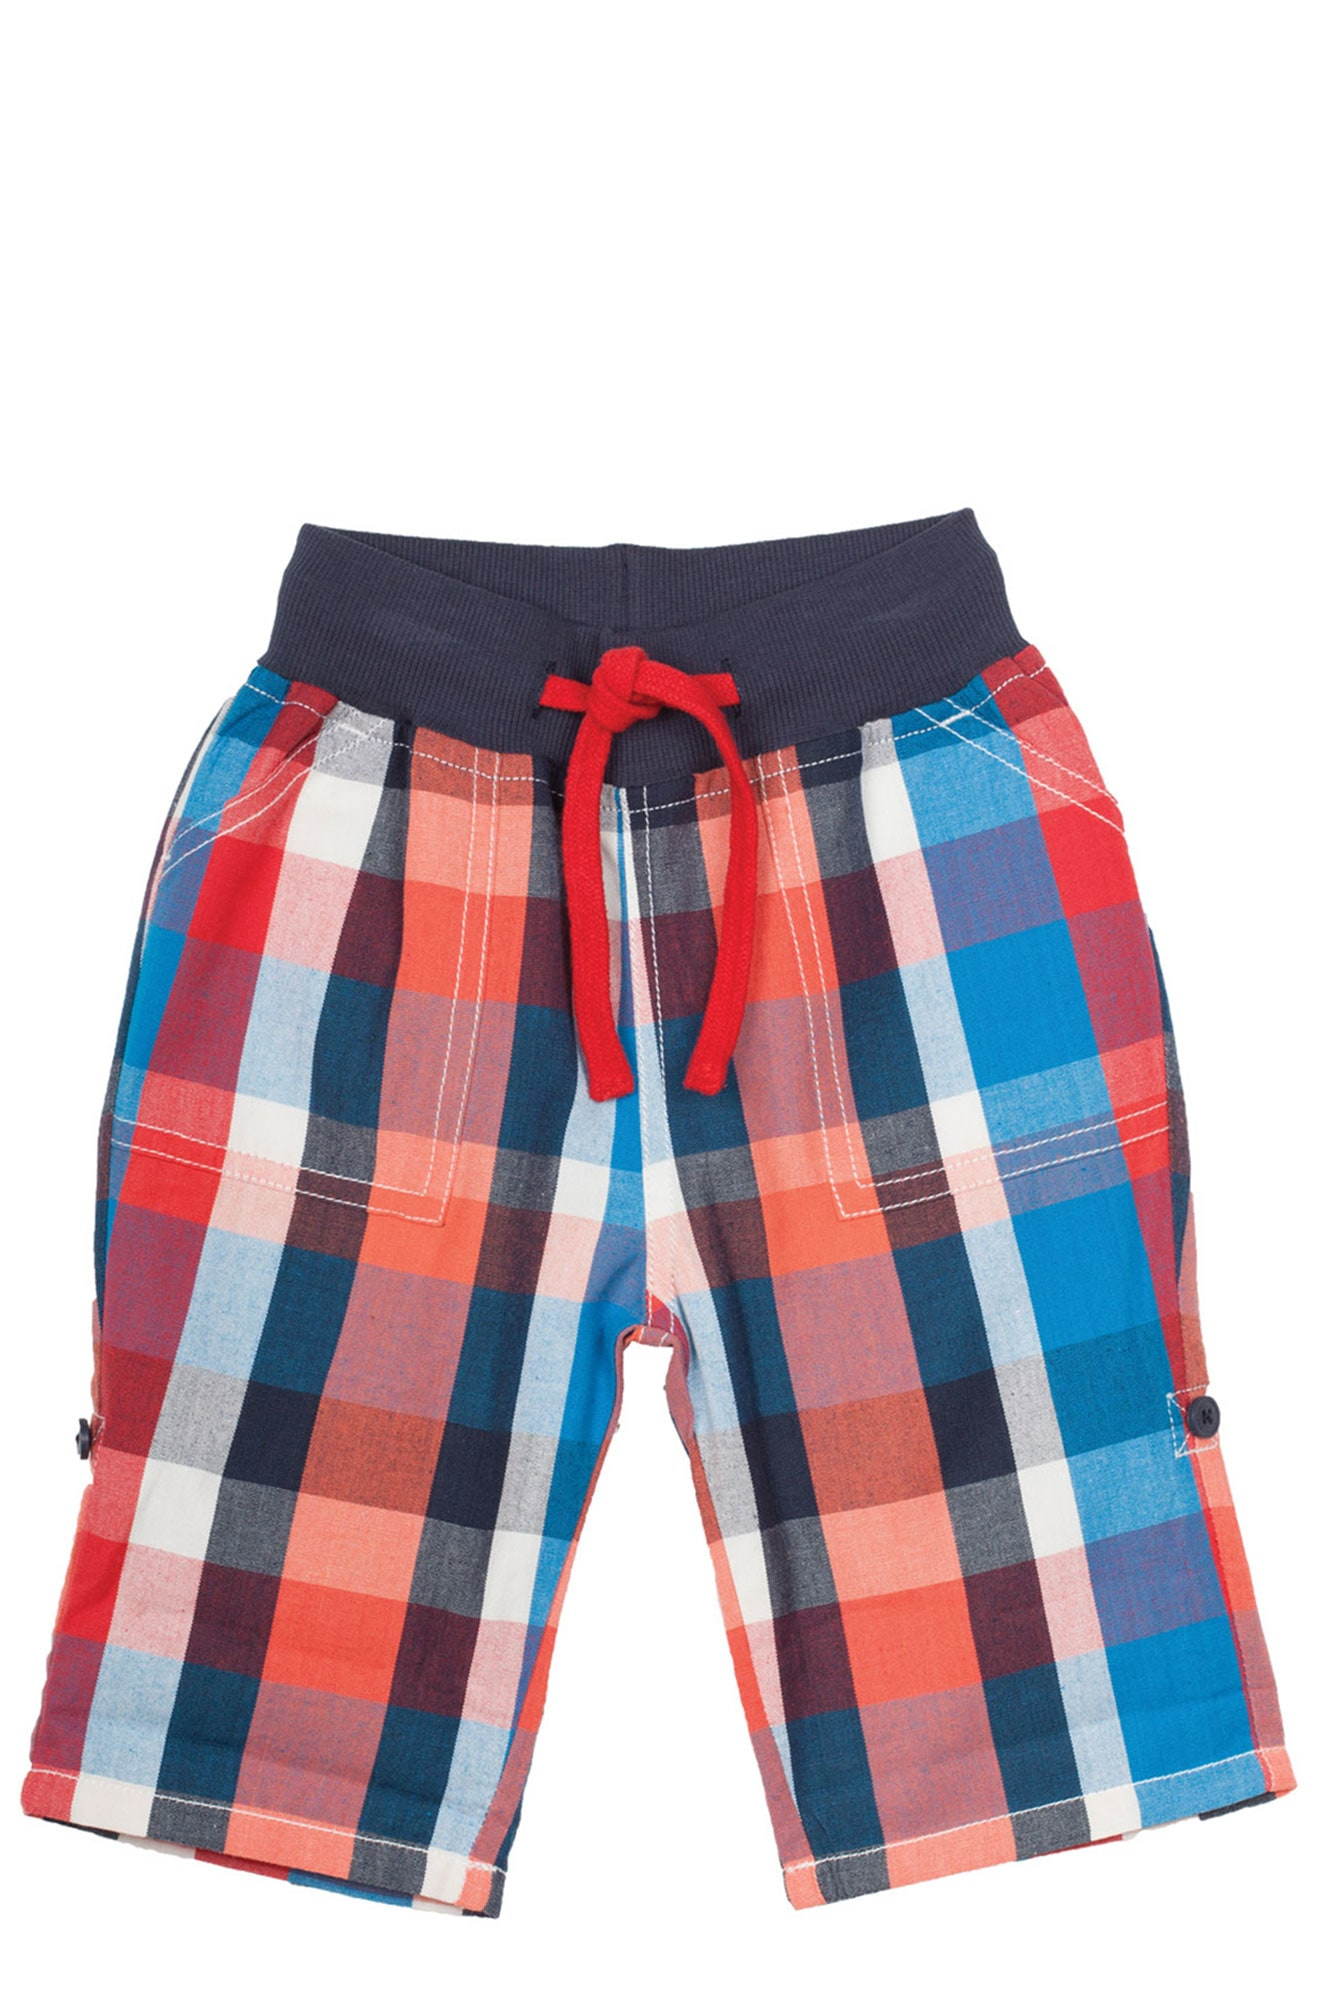 Stockists of Check Roll Up Trousers